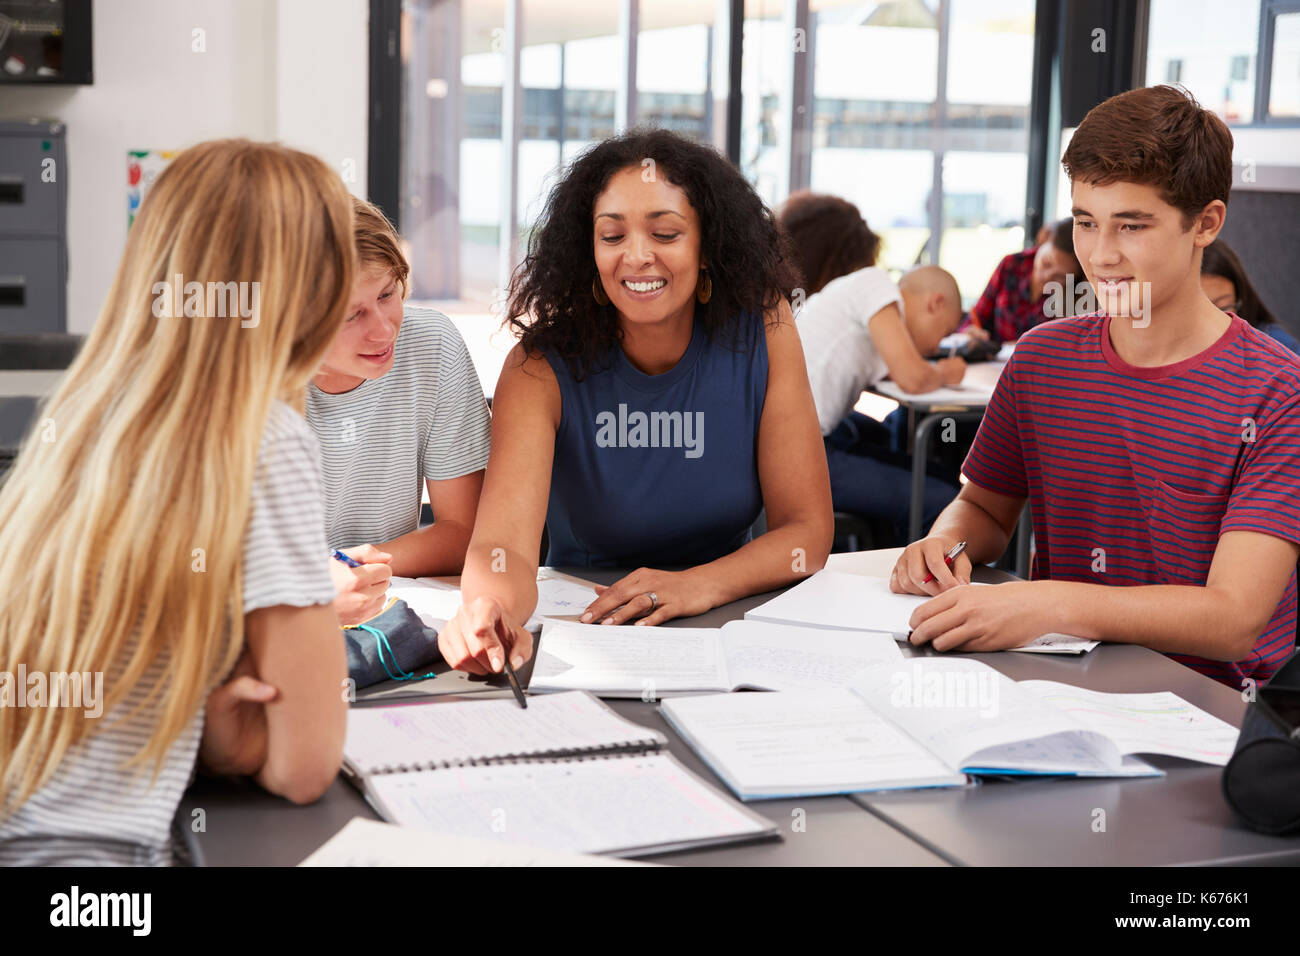 Teacher studying school books in class with high school kids - Stock Image